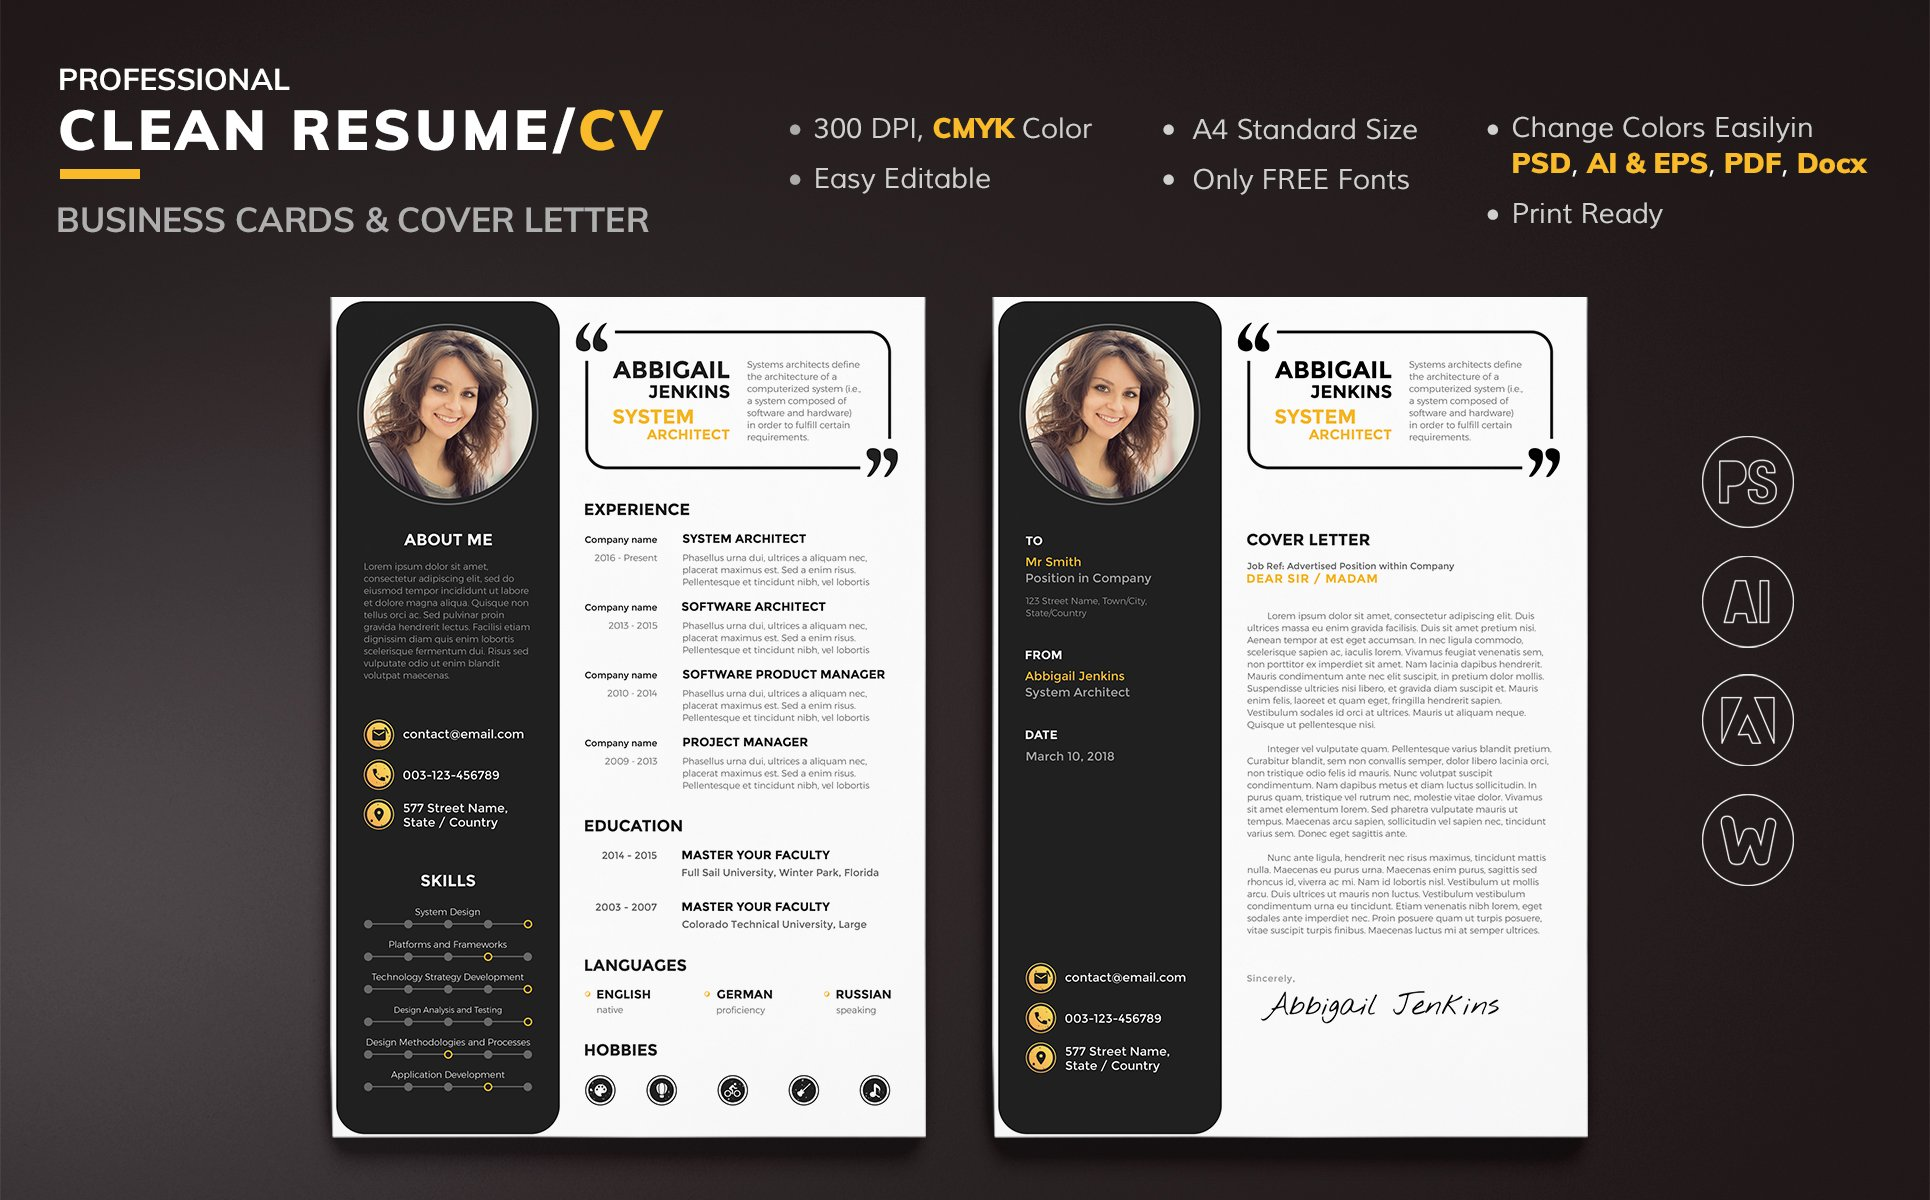 Abbigail Jenkins System Architect Resume Template 67792